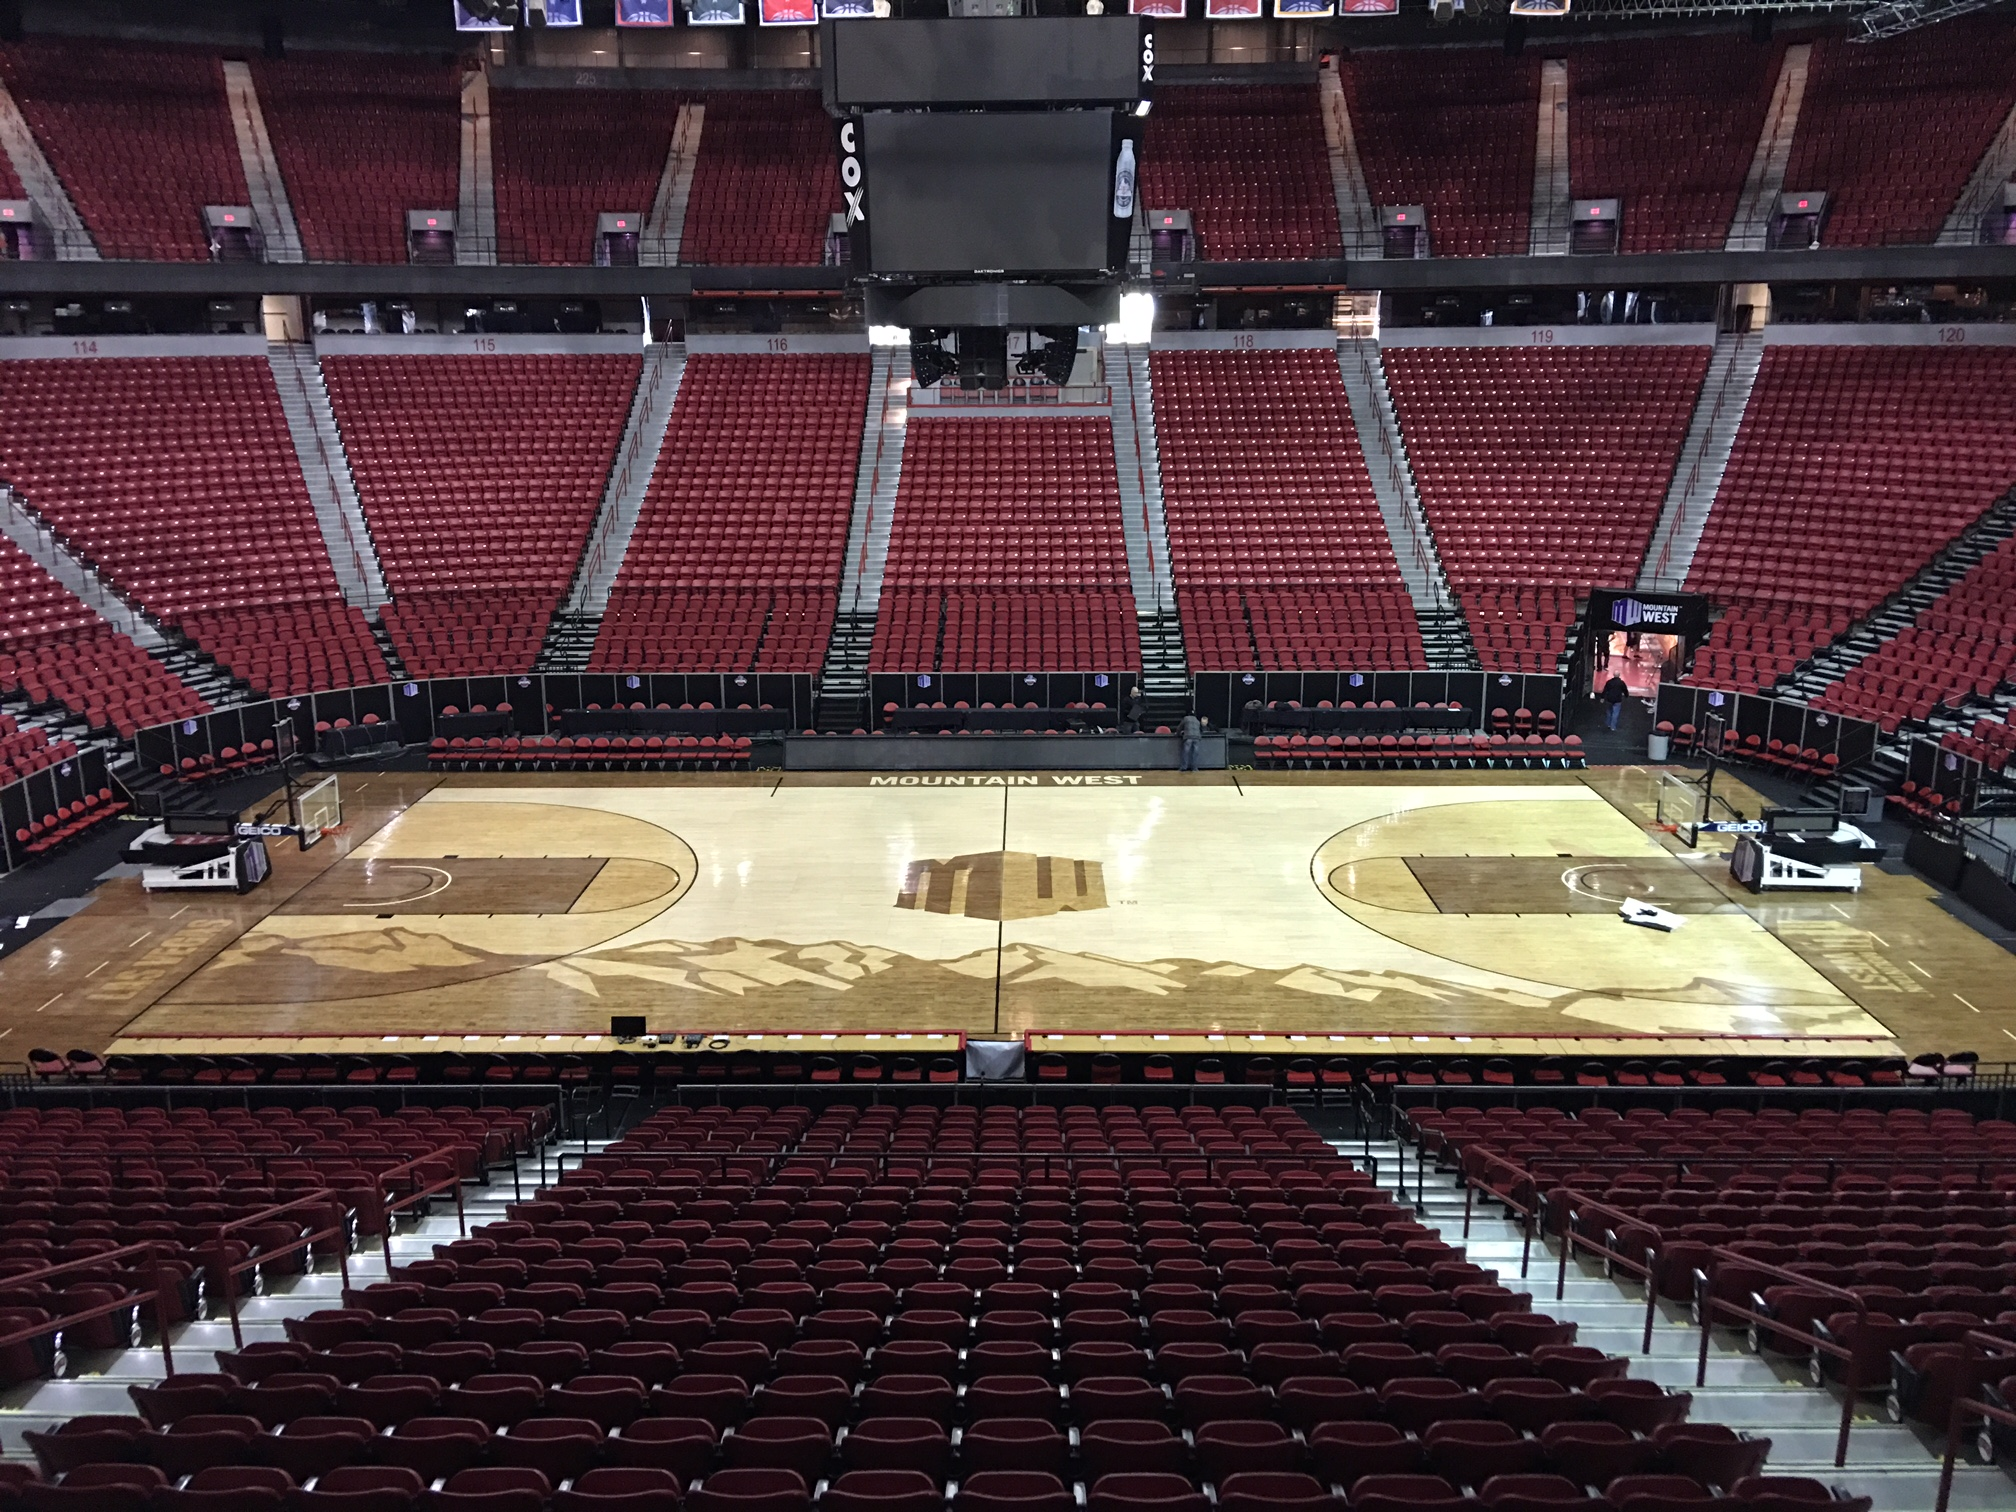 Mountain West Conference Men's Basketball Court